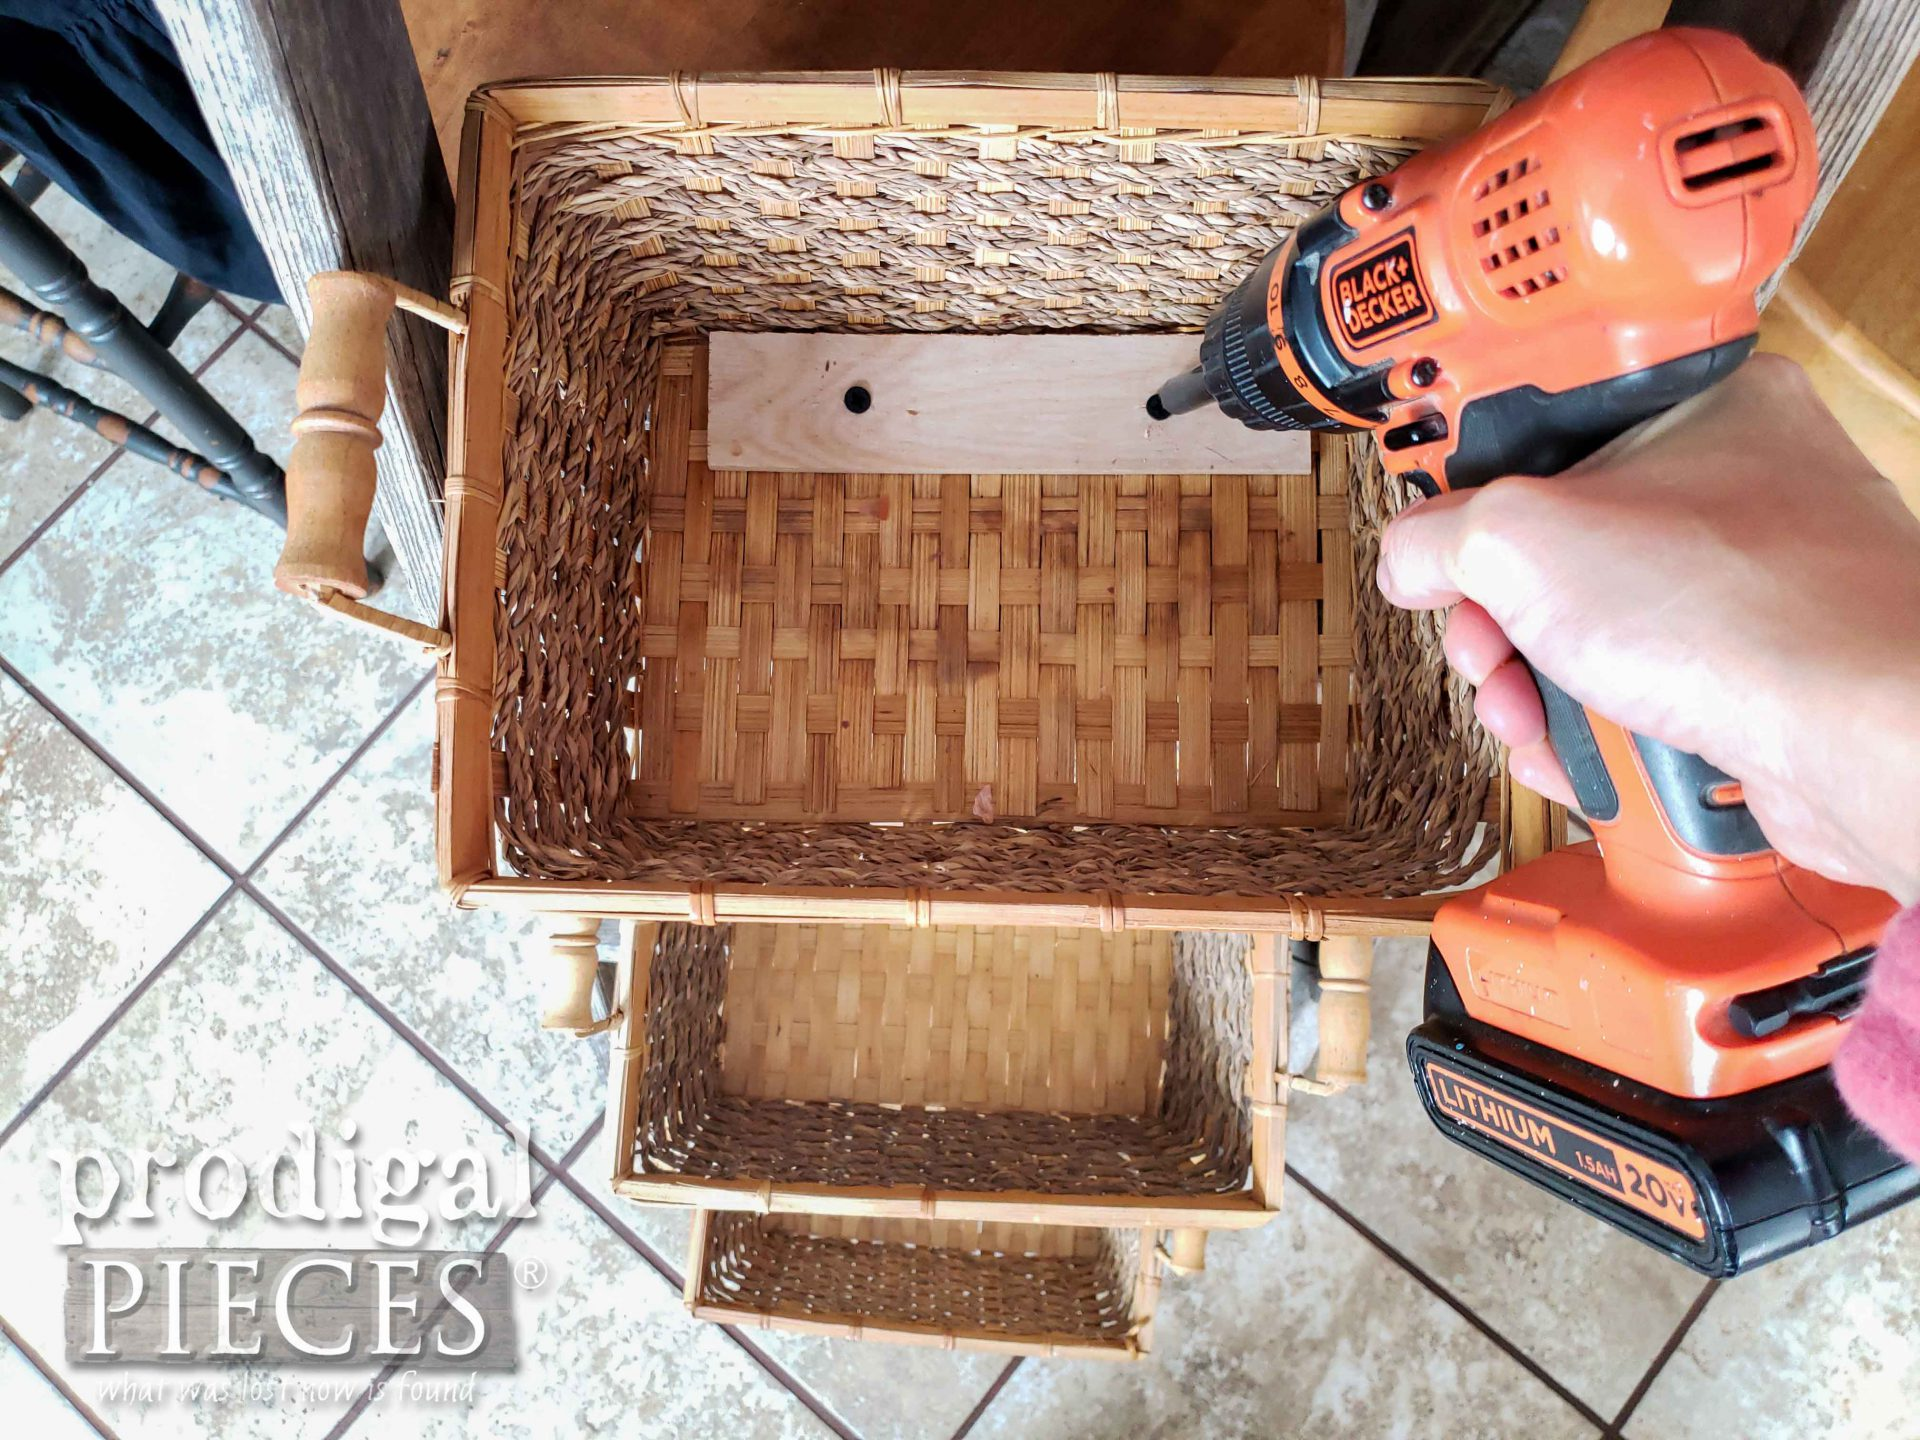 Attaching Baskets to Upcycled Broken Ladder for Farmhouse Decor | prodigalpieces.com #prodigalpieces